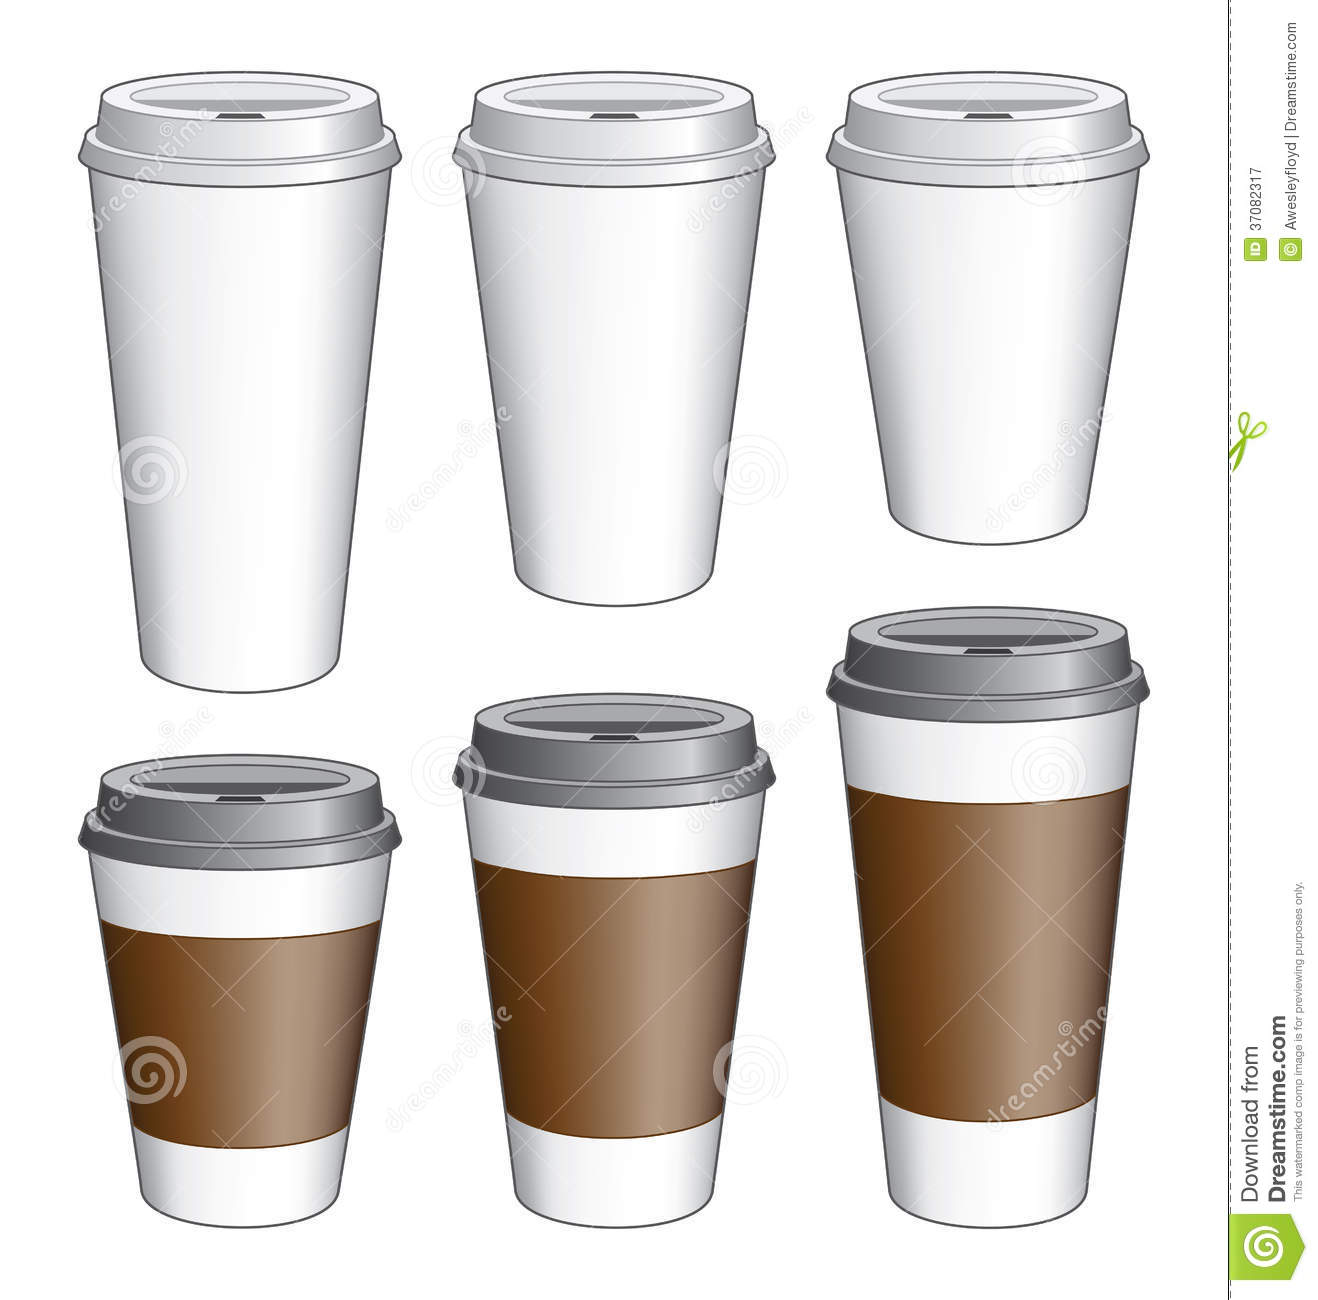 coffee to go cups royalty free stock photography image 37082317. Black Bedroom Furniture Sets. Home Design Ideas